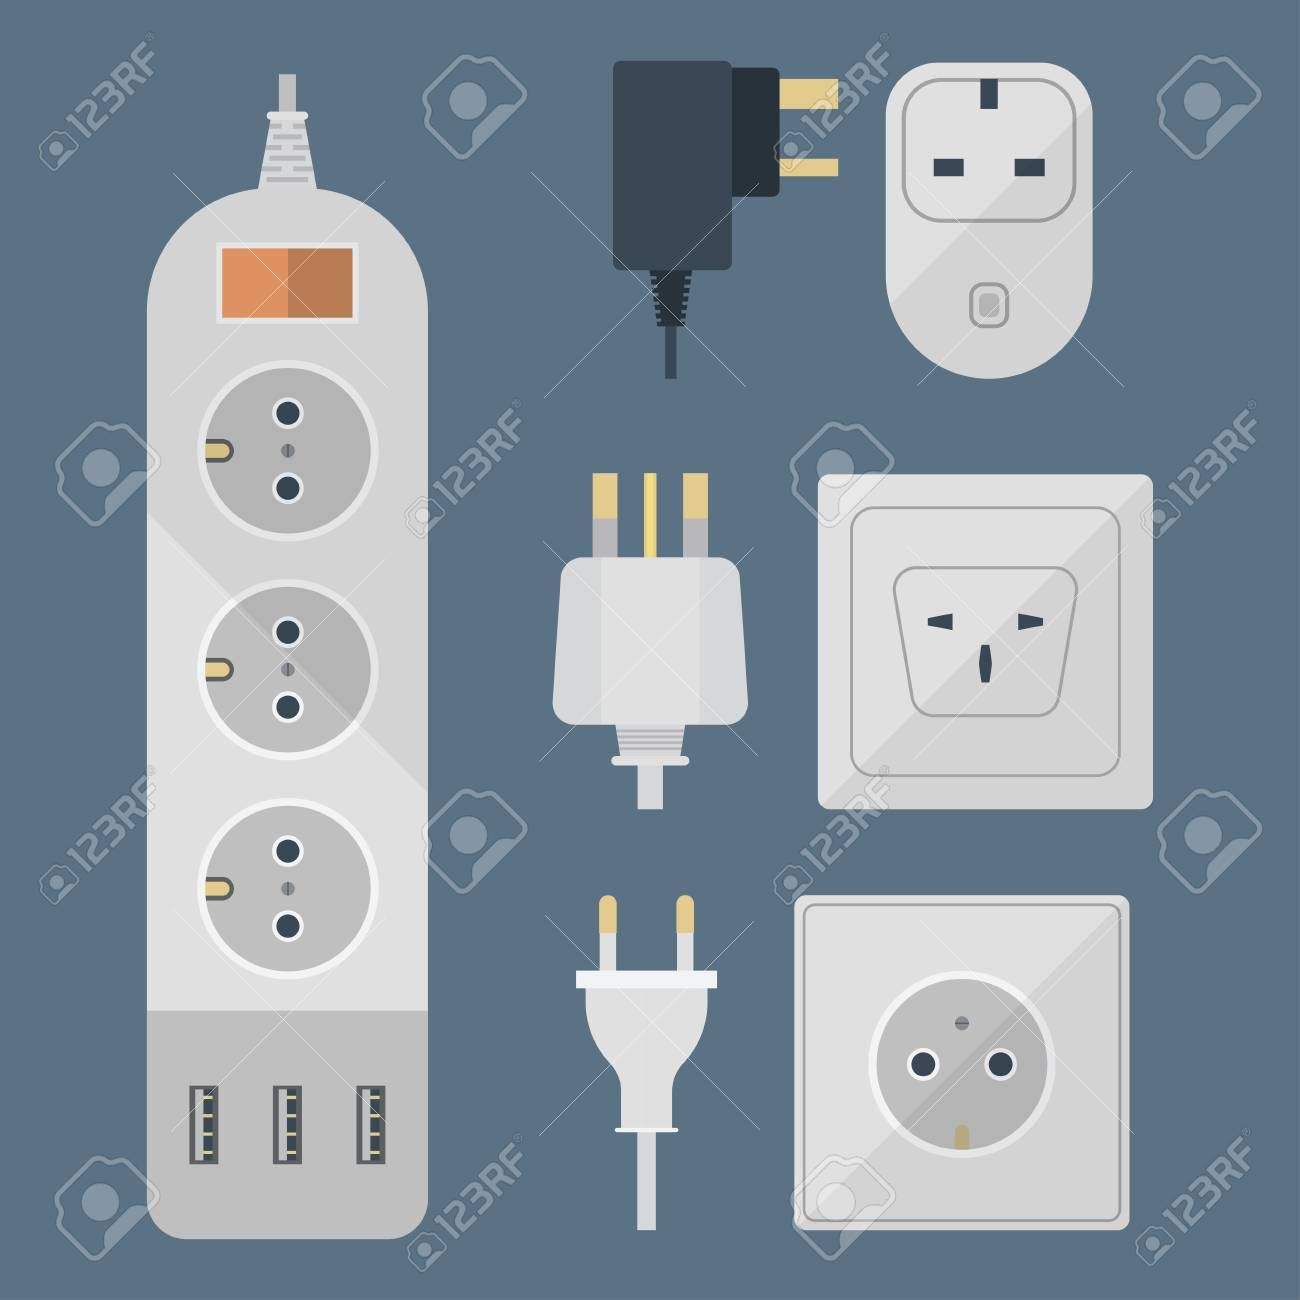 Electric Plugs Stack Outlet Illustration Energy Socket Electrical Outlets Plugs European And Usa Asia Appliance Interior Icon Wire Cable Cord Plug Connection